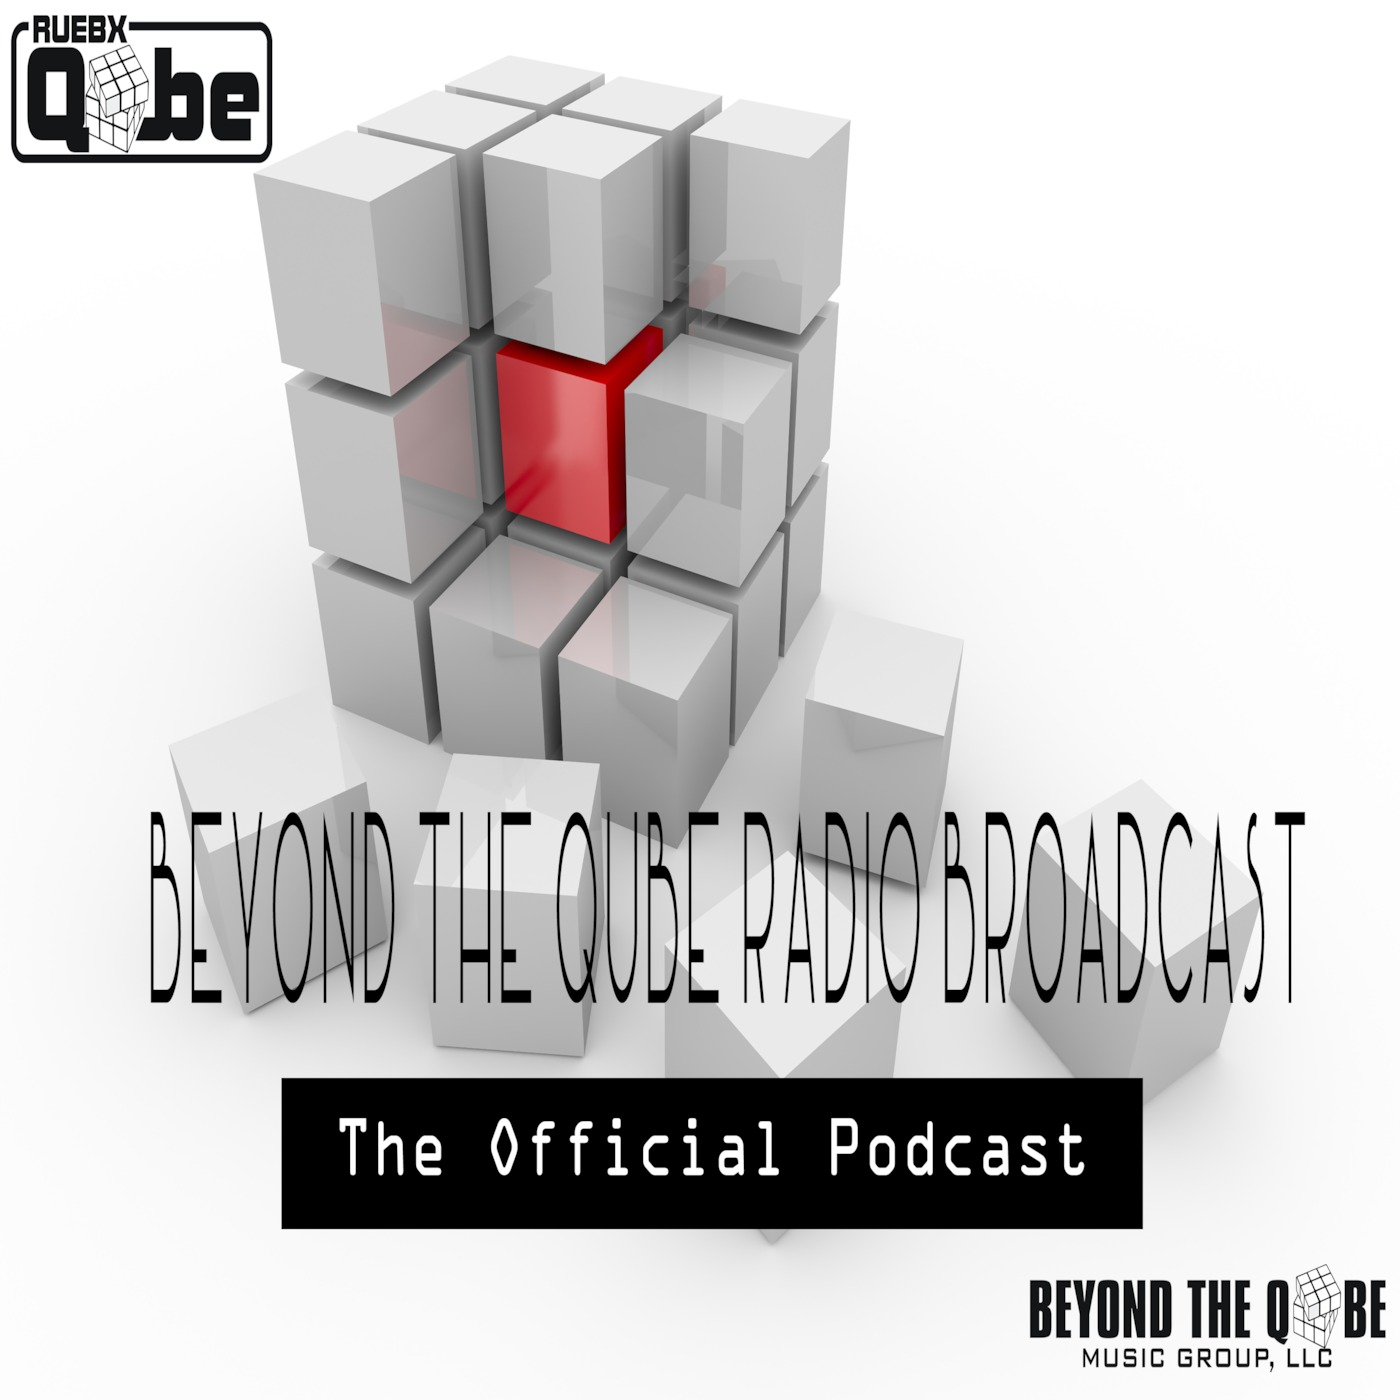 Beyond The Qube Radio Broadcast